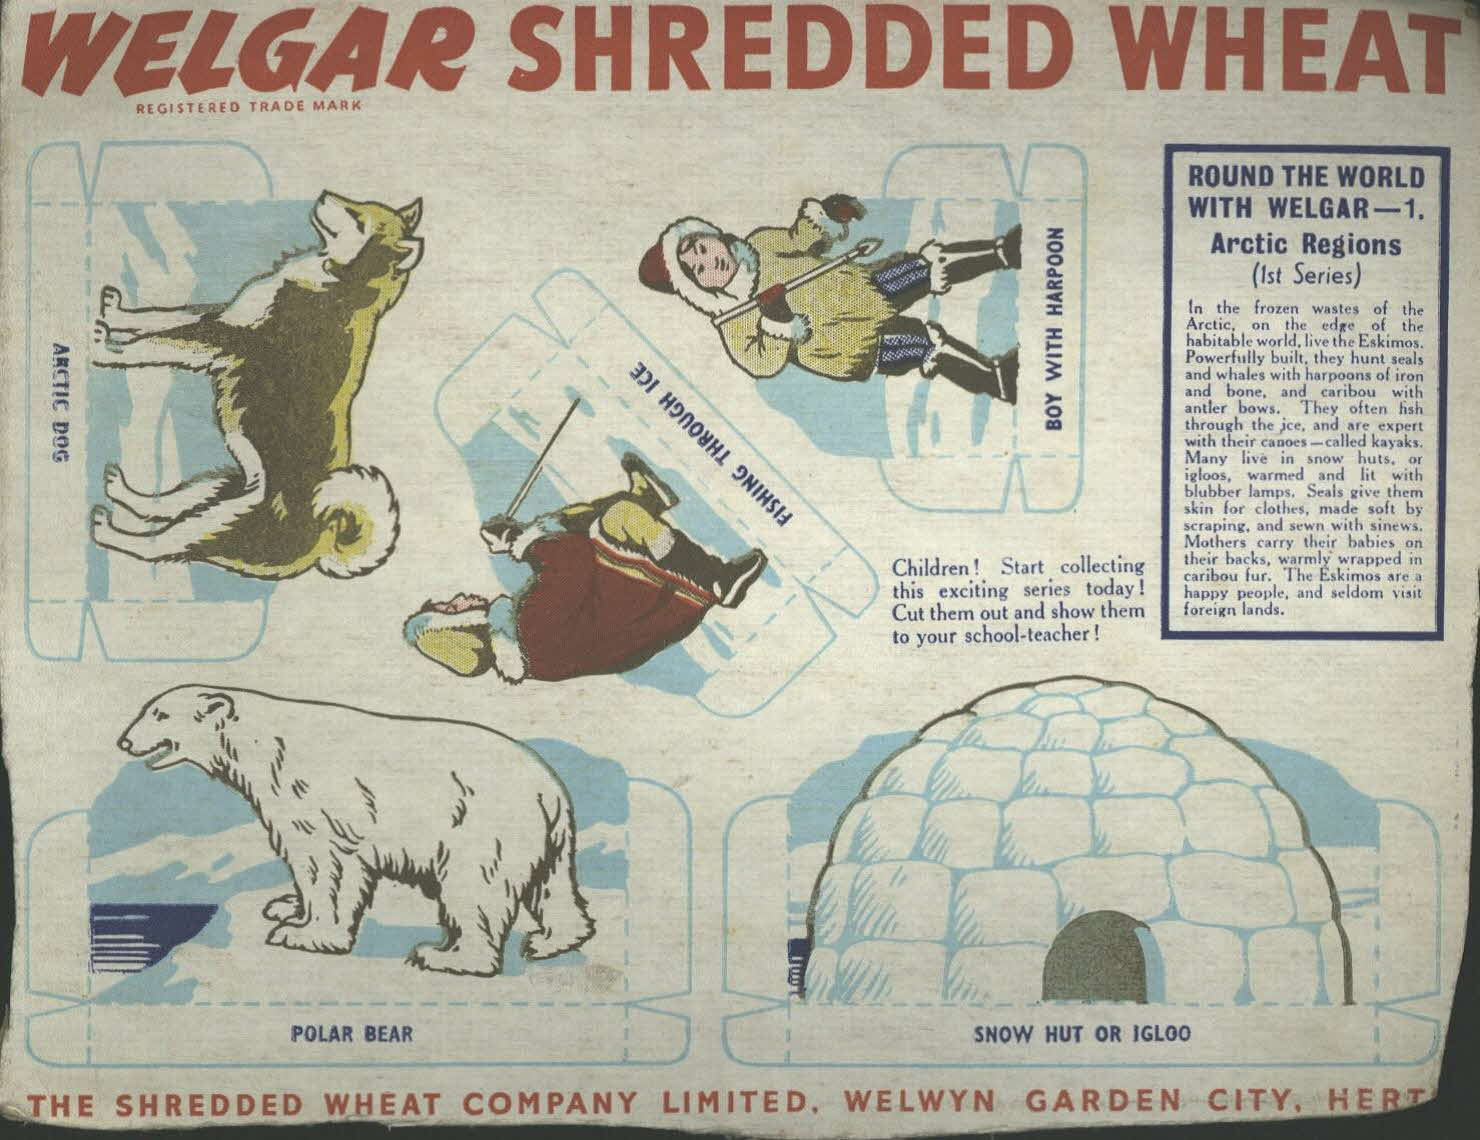 1950s Shredded Wheat Round the World with Welgar No 1